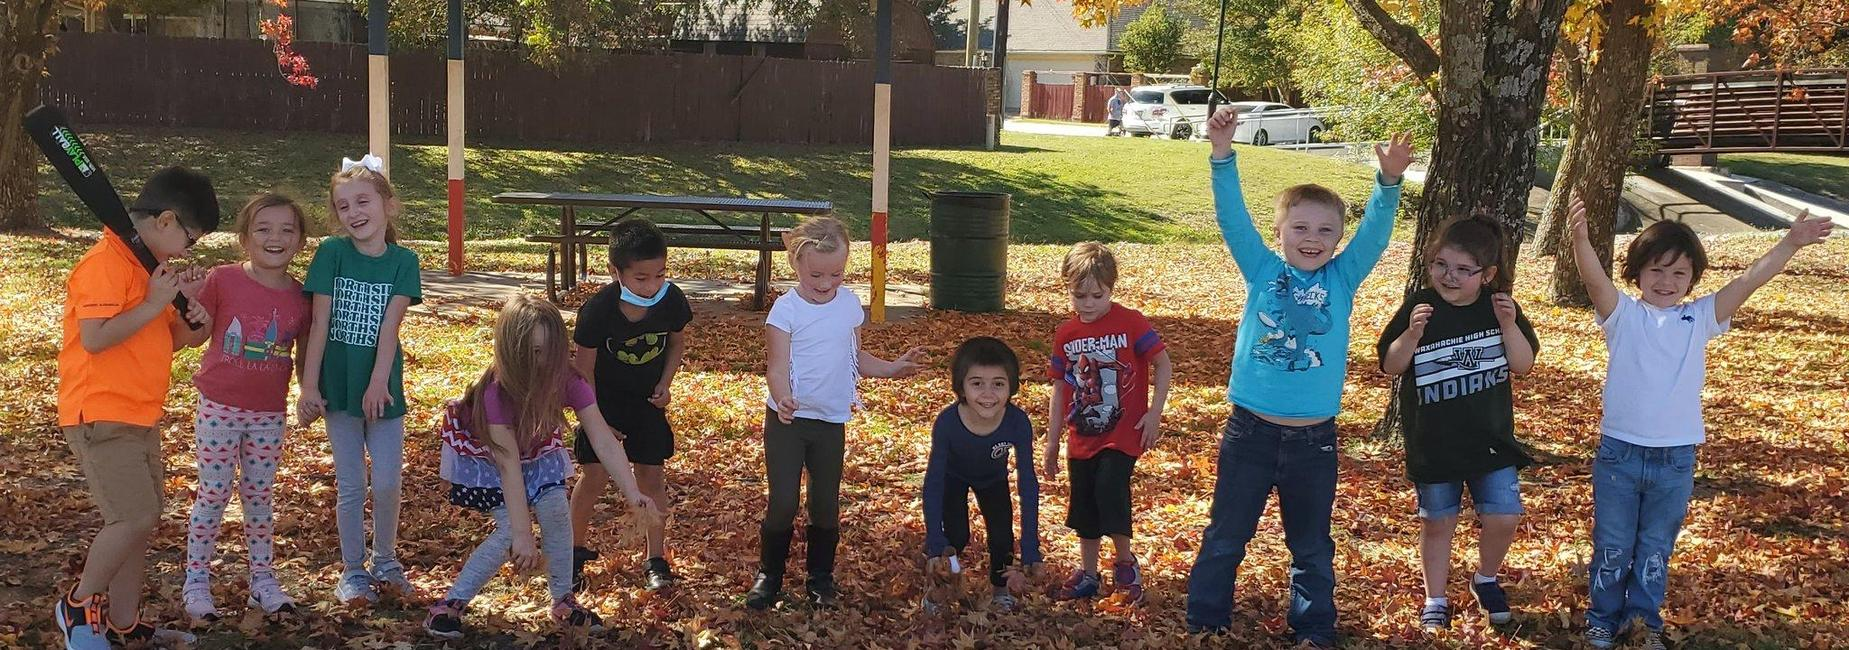 group of kiddos playing in fallen leaves